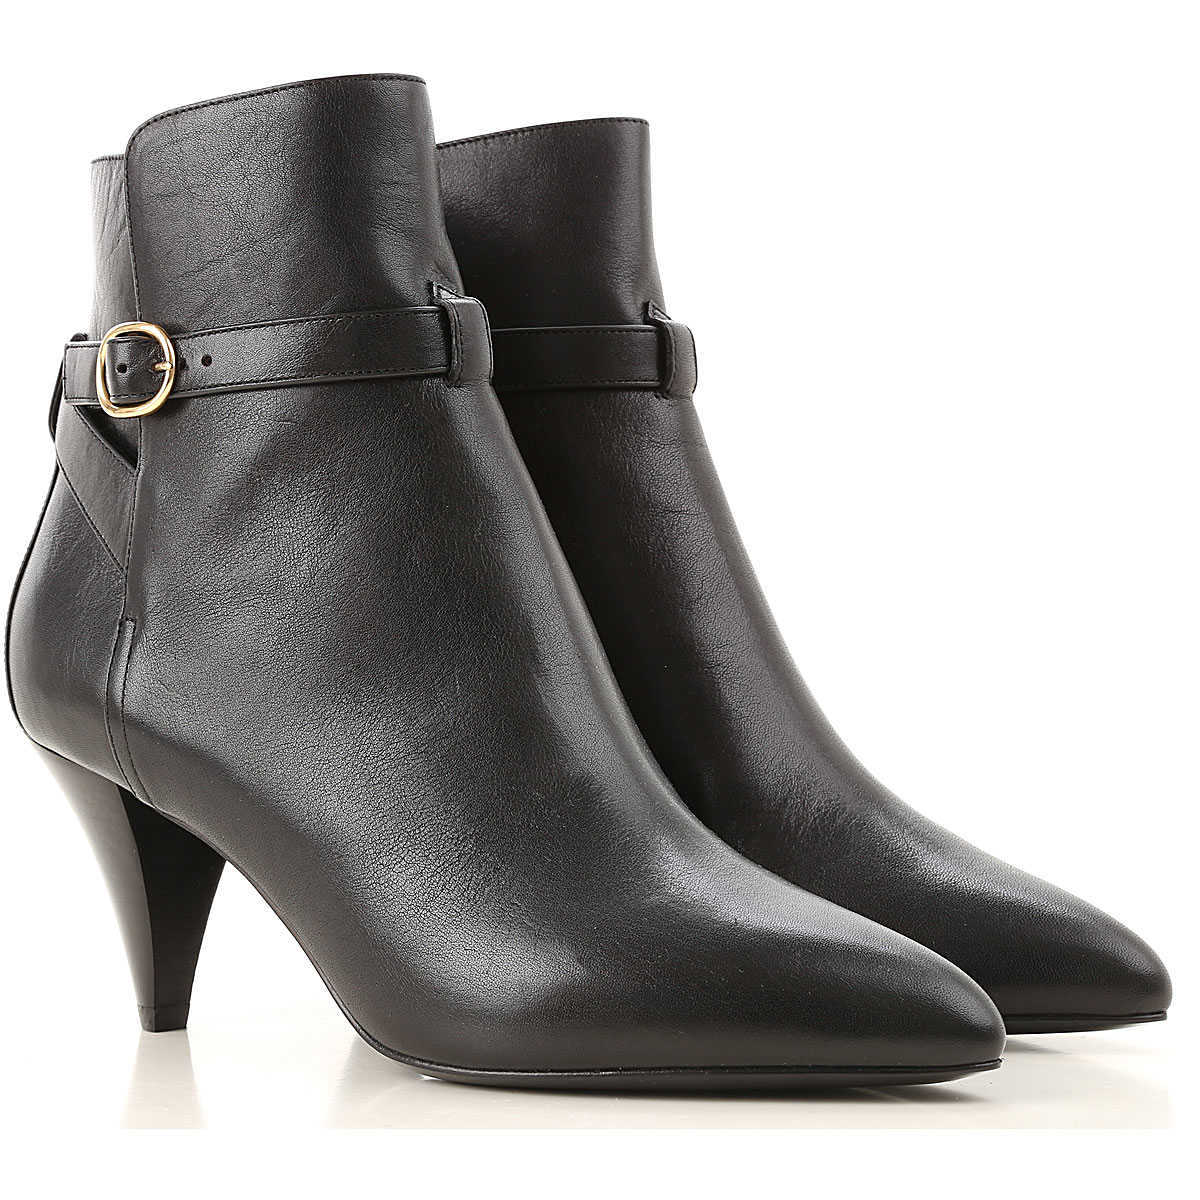 Celine Boots for Women Booties - GOOFASH